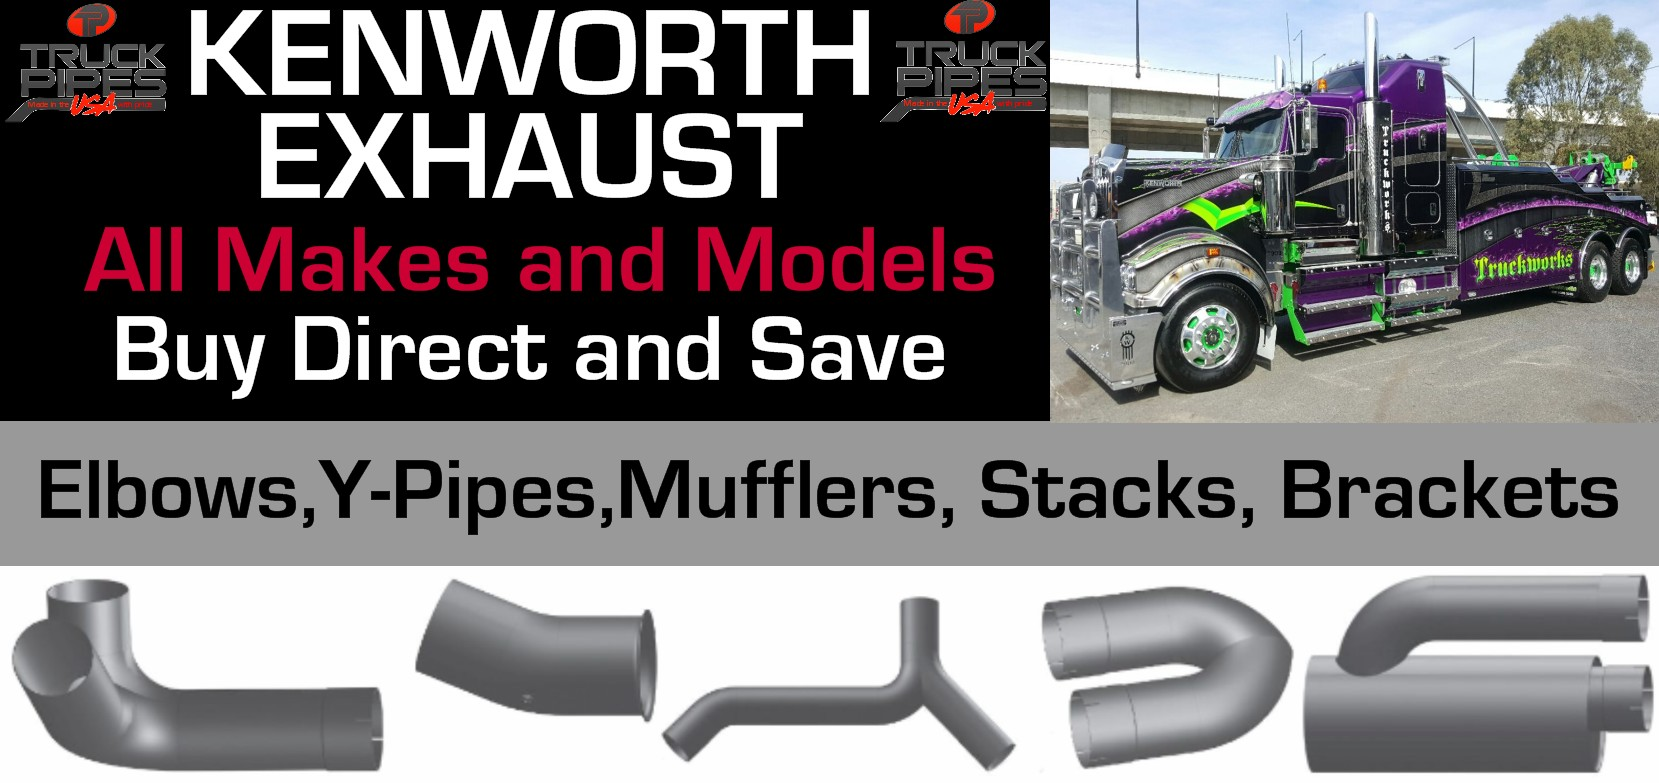 kenworth-exhaust-banner.jpg